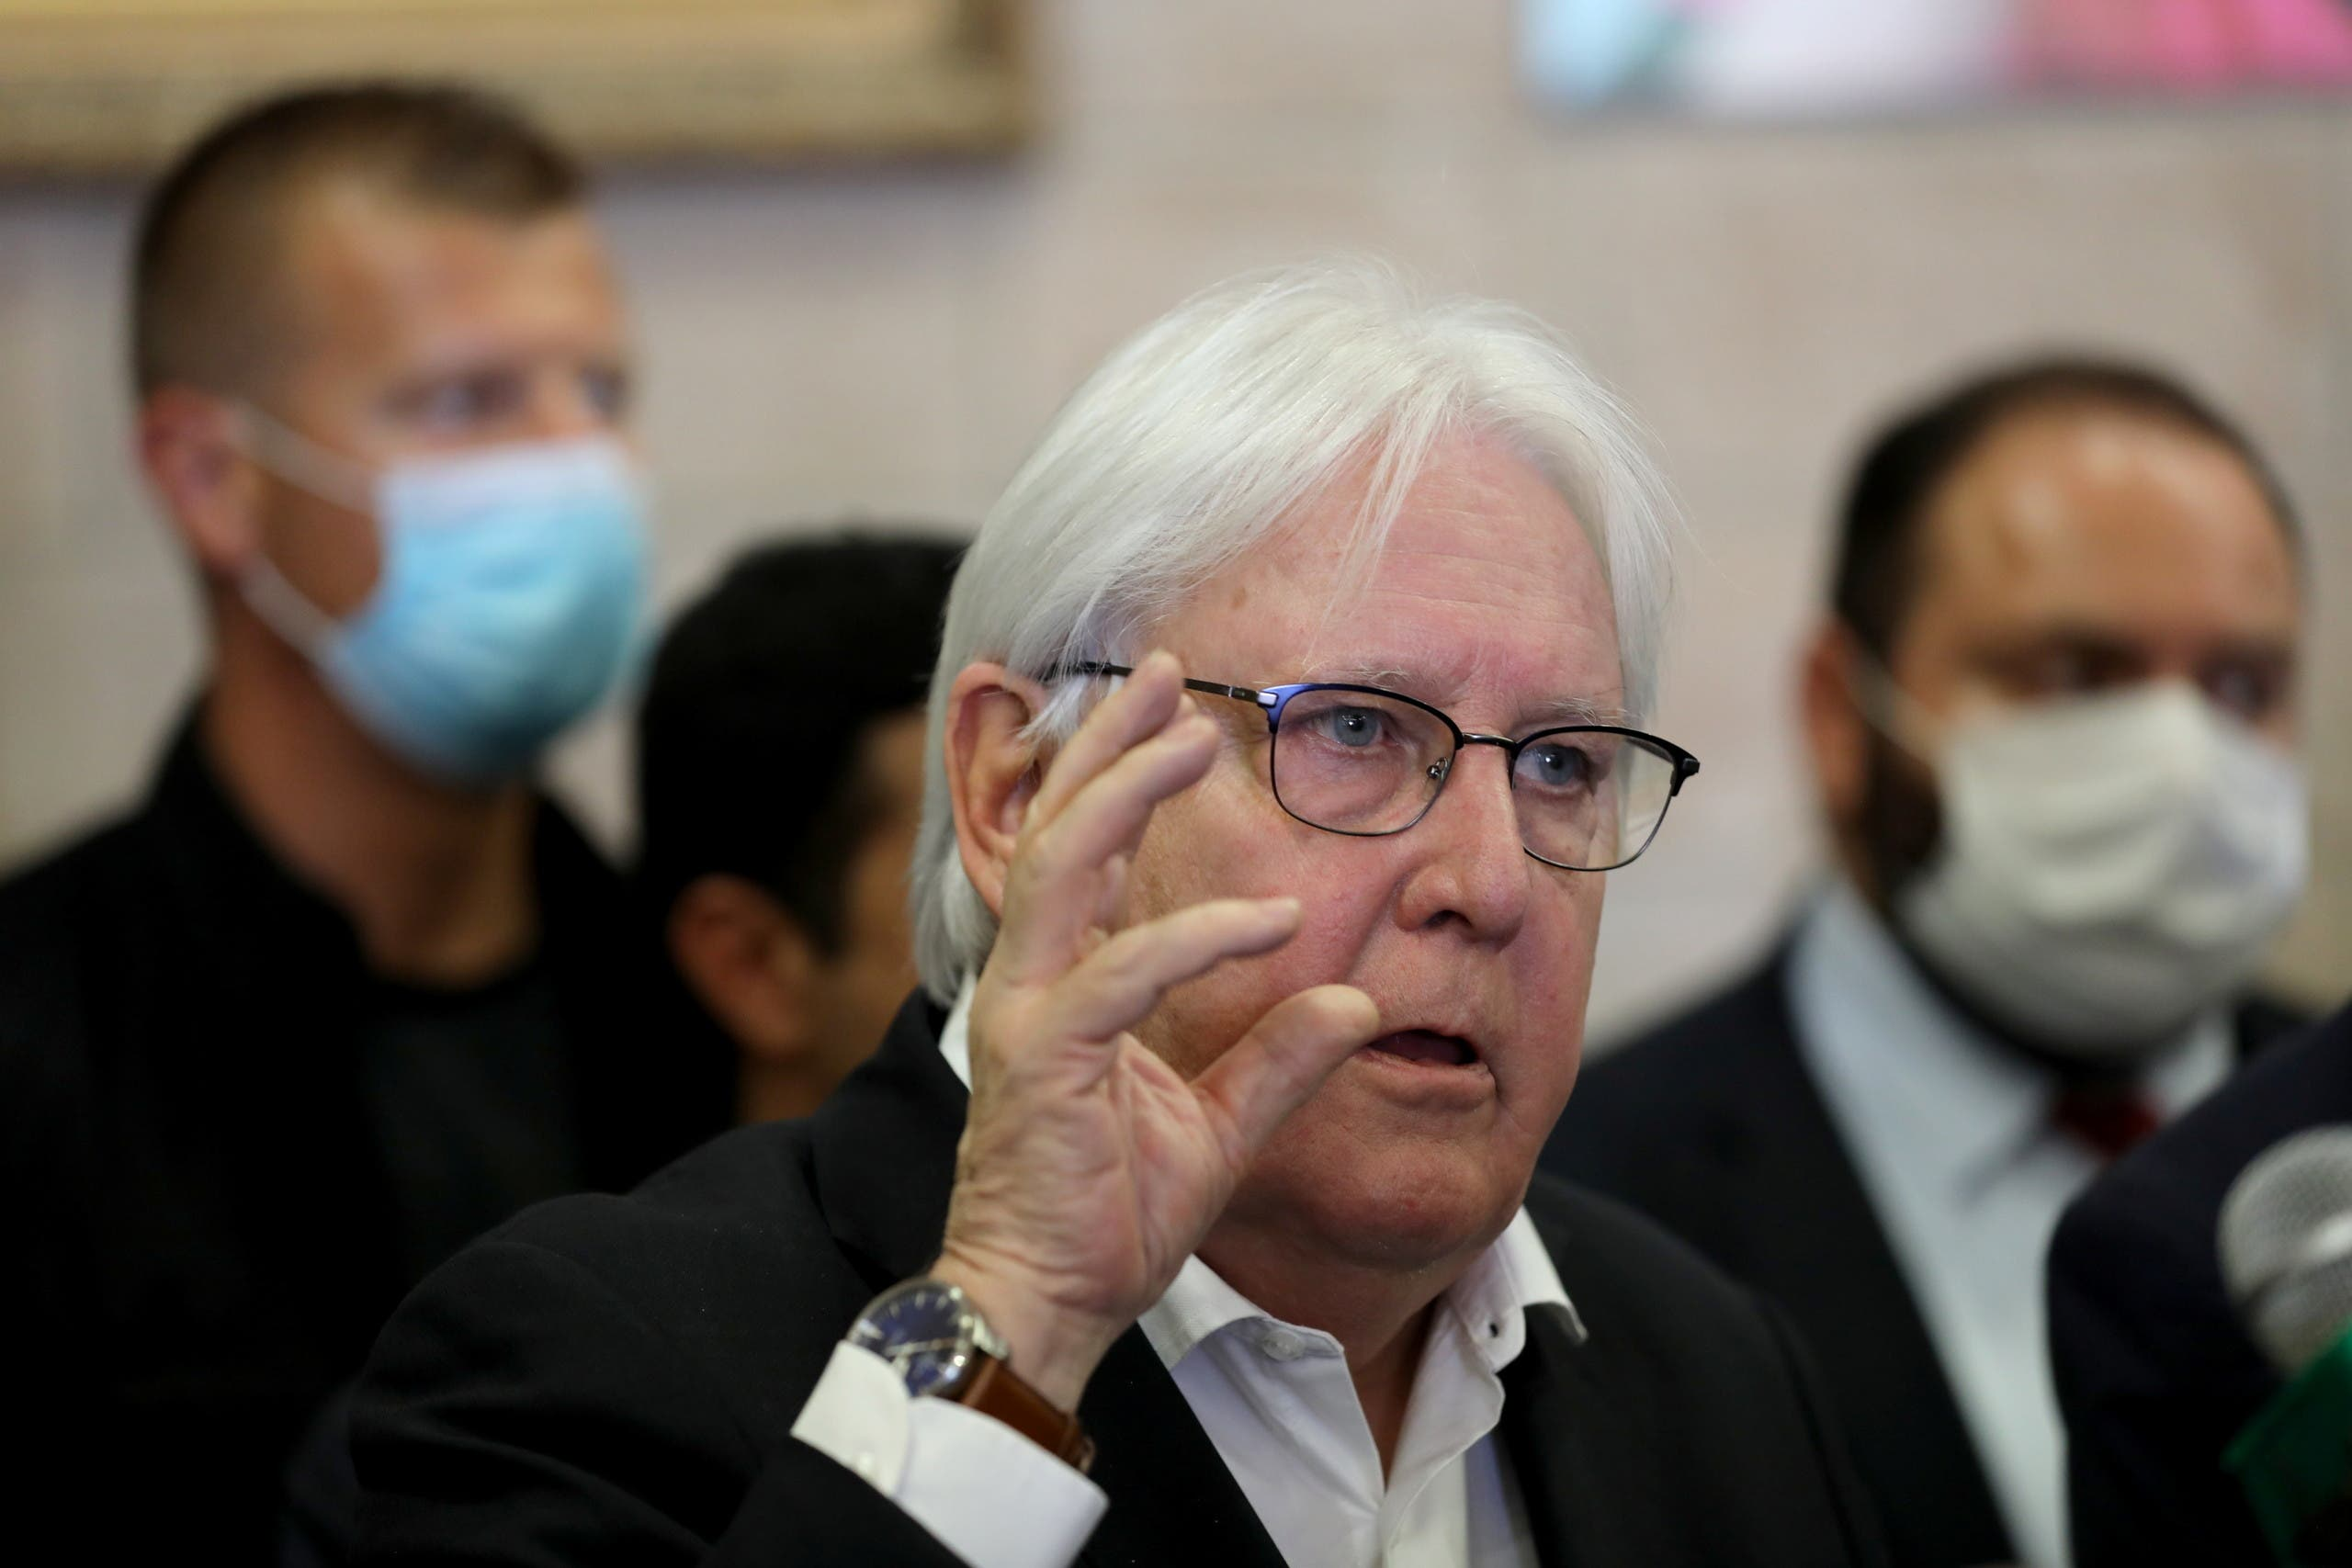 United Nations special envoy to Yemen, Martin Griffiths, speaks during a news conference at Sanaa Airport, in Sanaa, Yemen May 31, 2021. (Reuters)